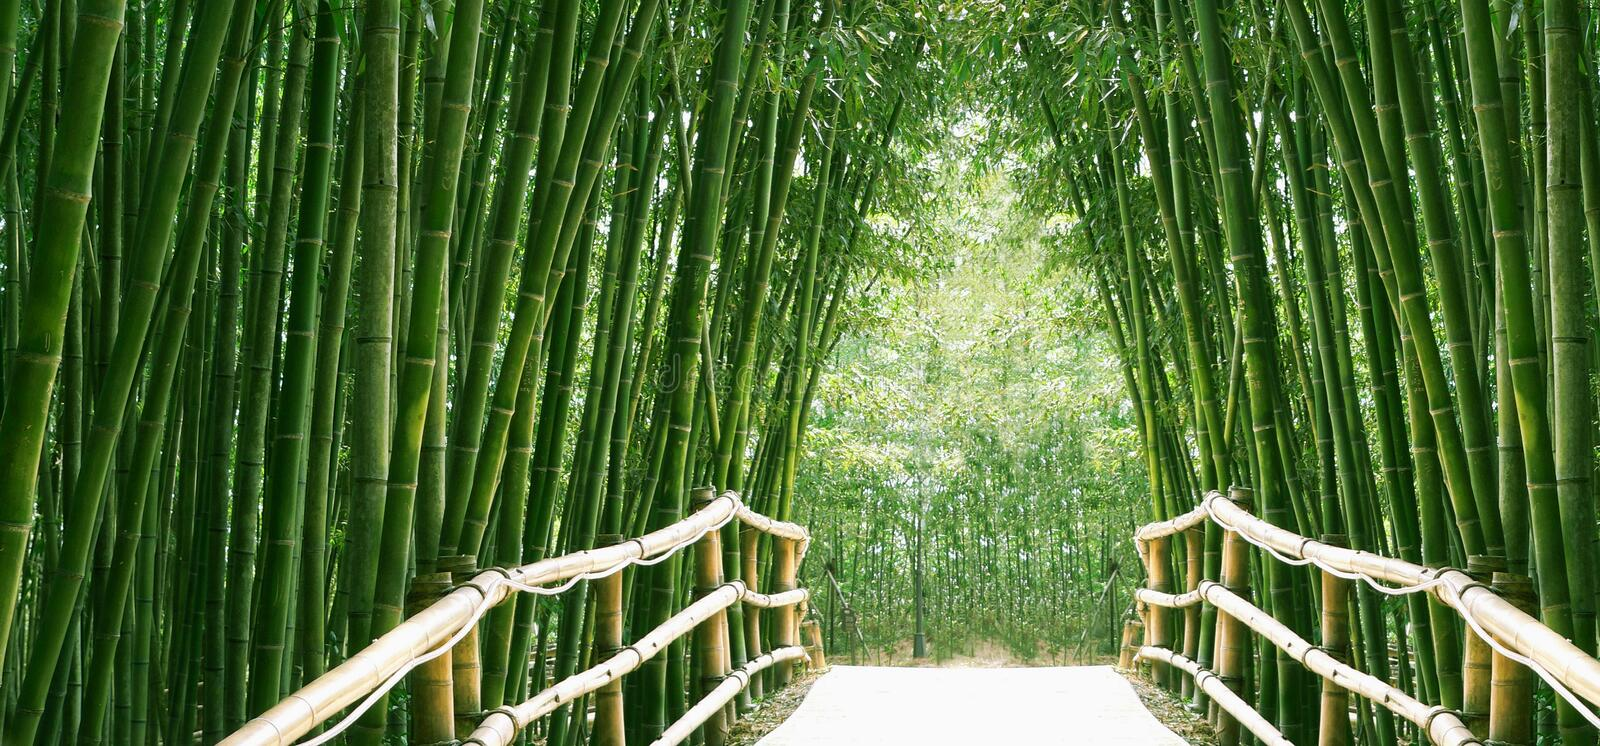 Download Bamboo Alley stock image. Image of wood, green, bamboo - 8481755